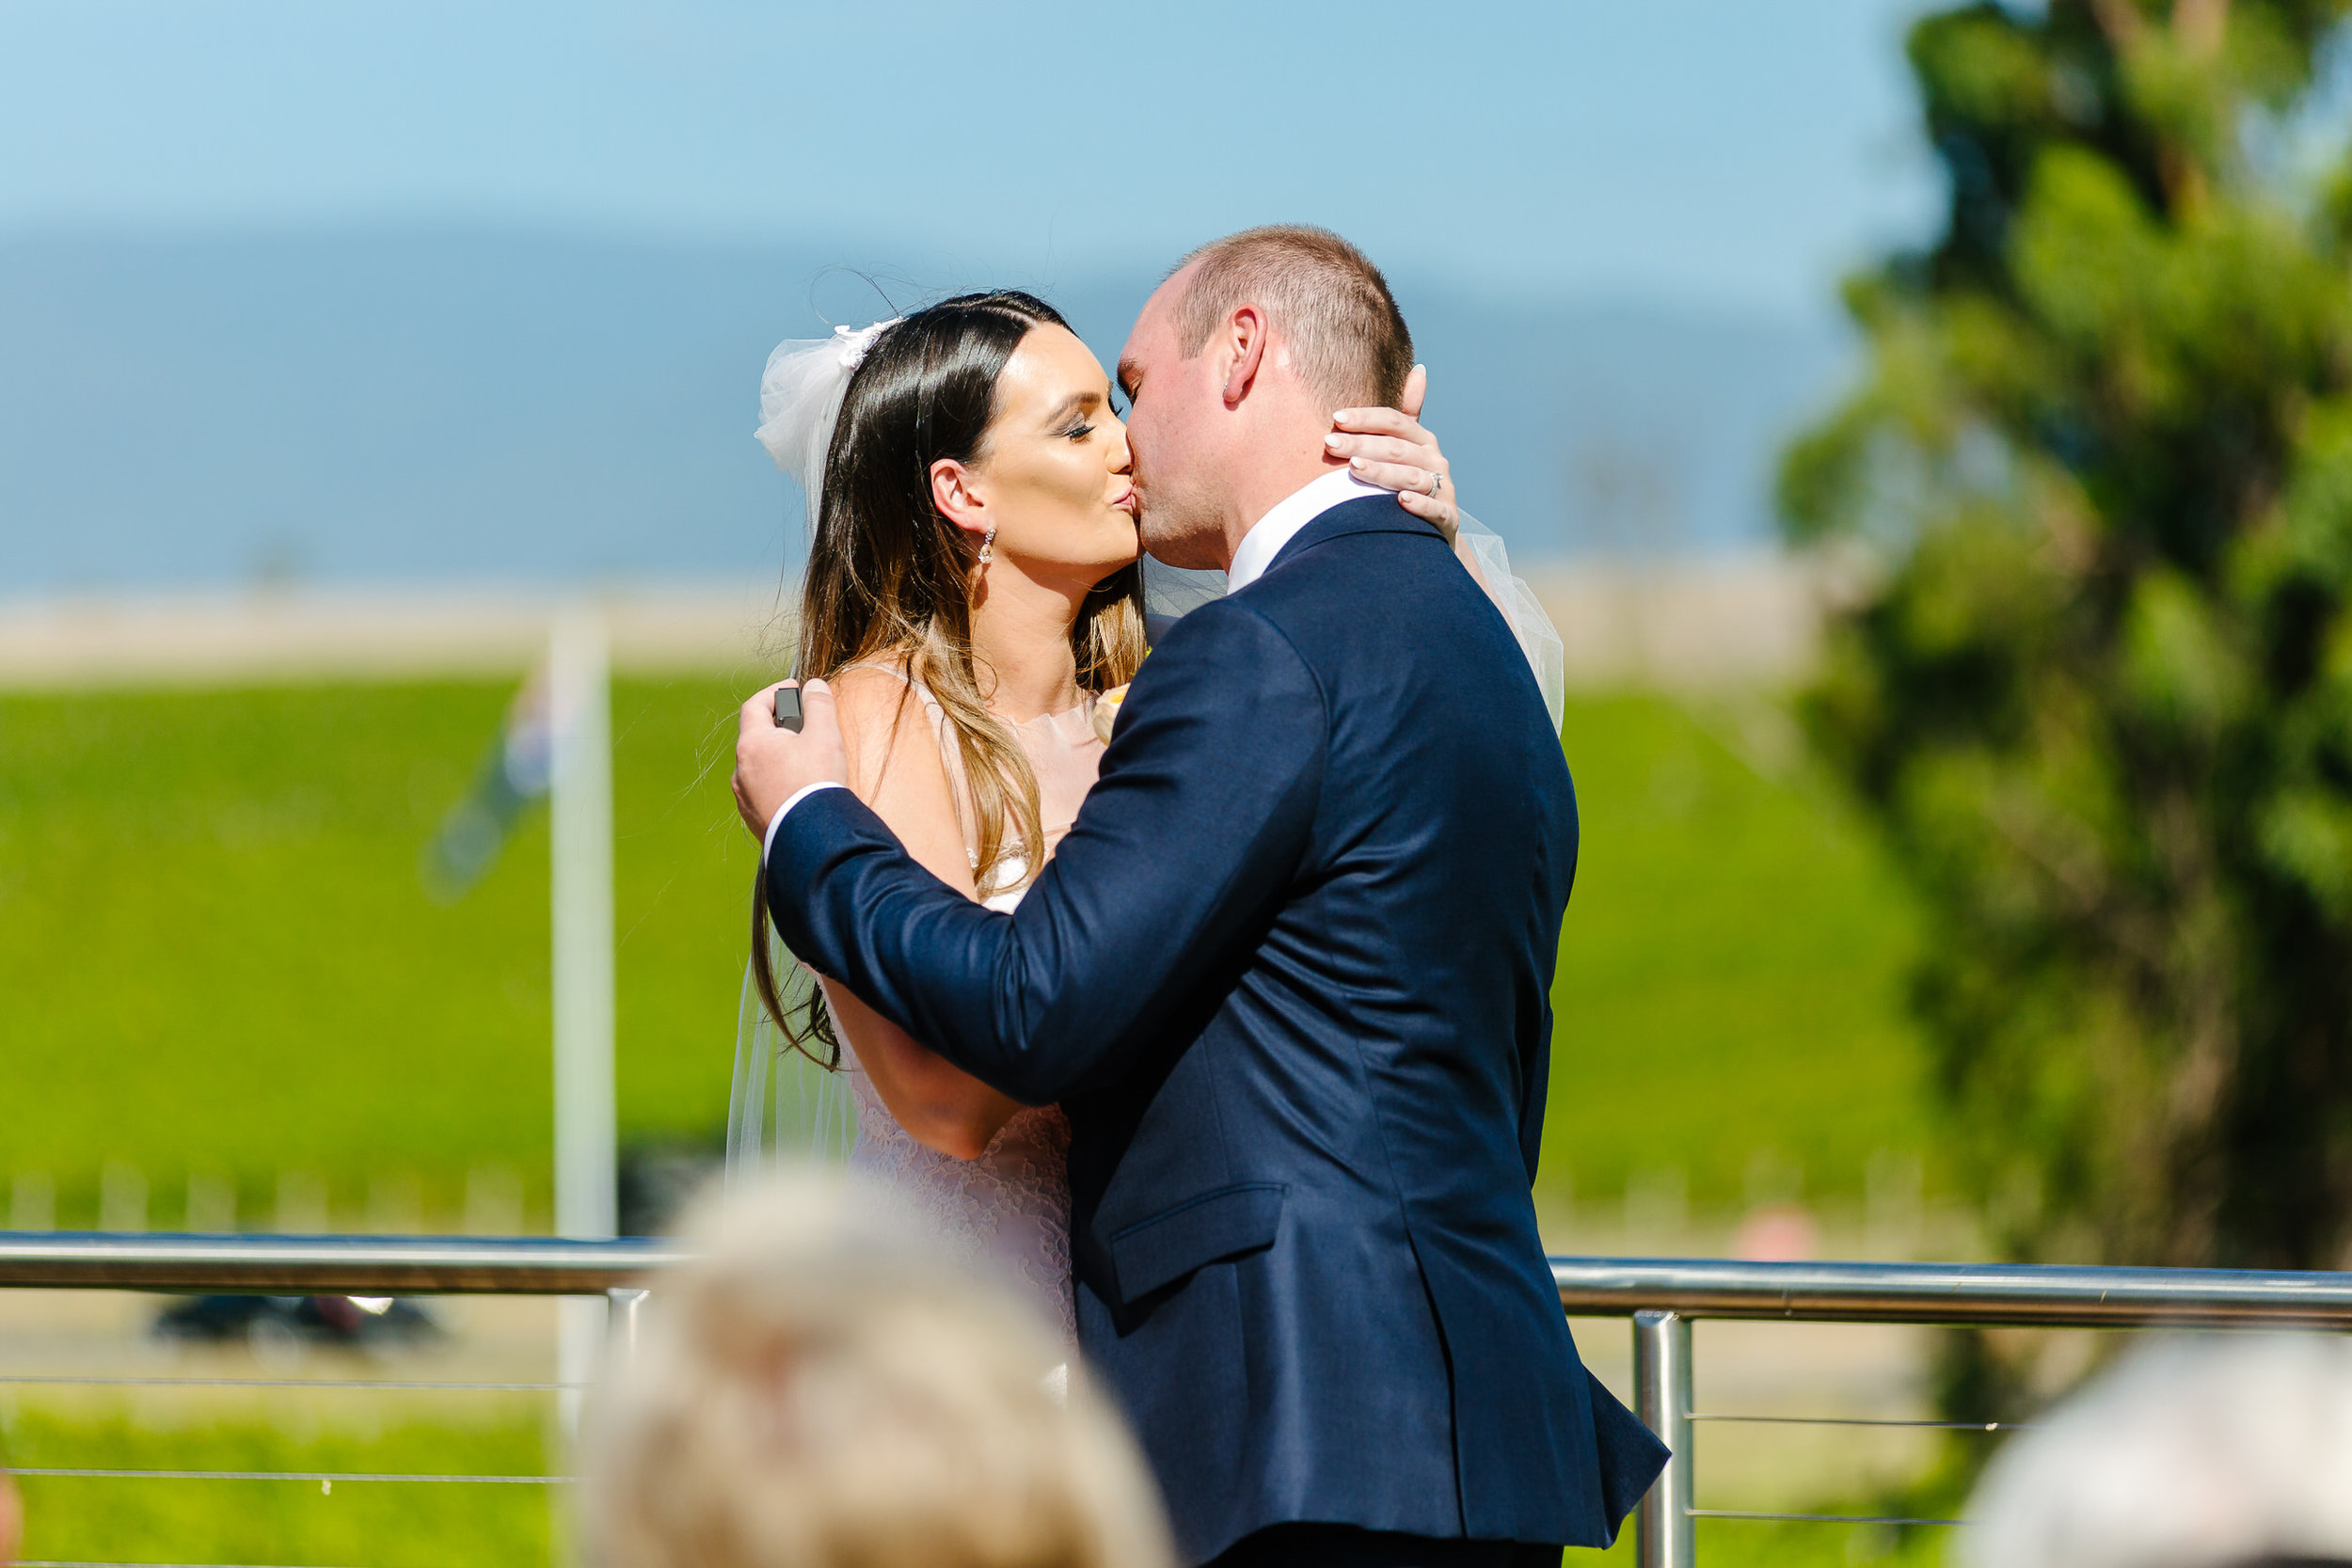 Justin_And_Jim_Photography_Balgownie_Winery_Wedding33.JPG